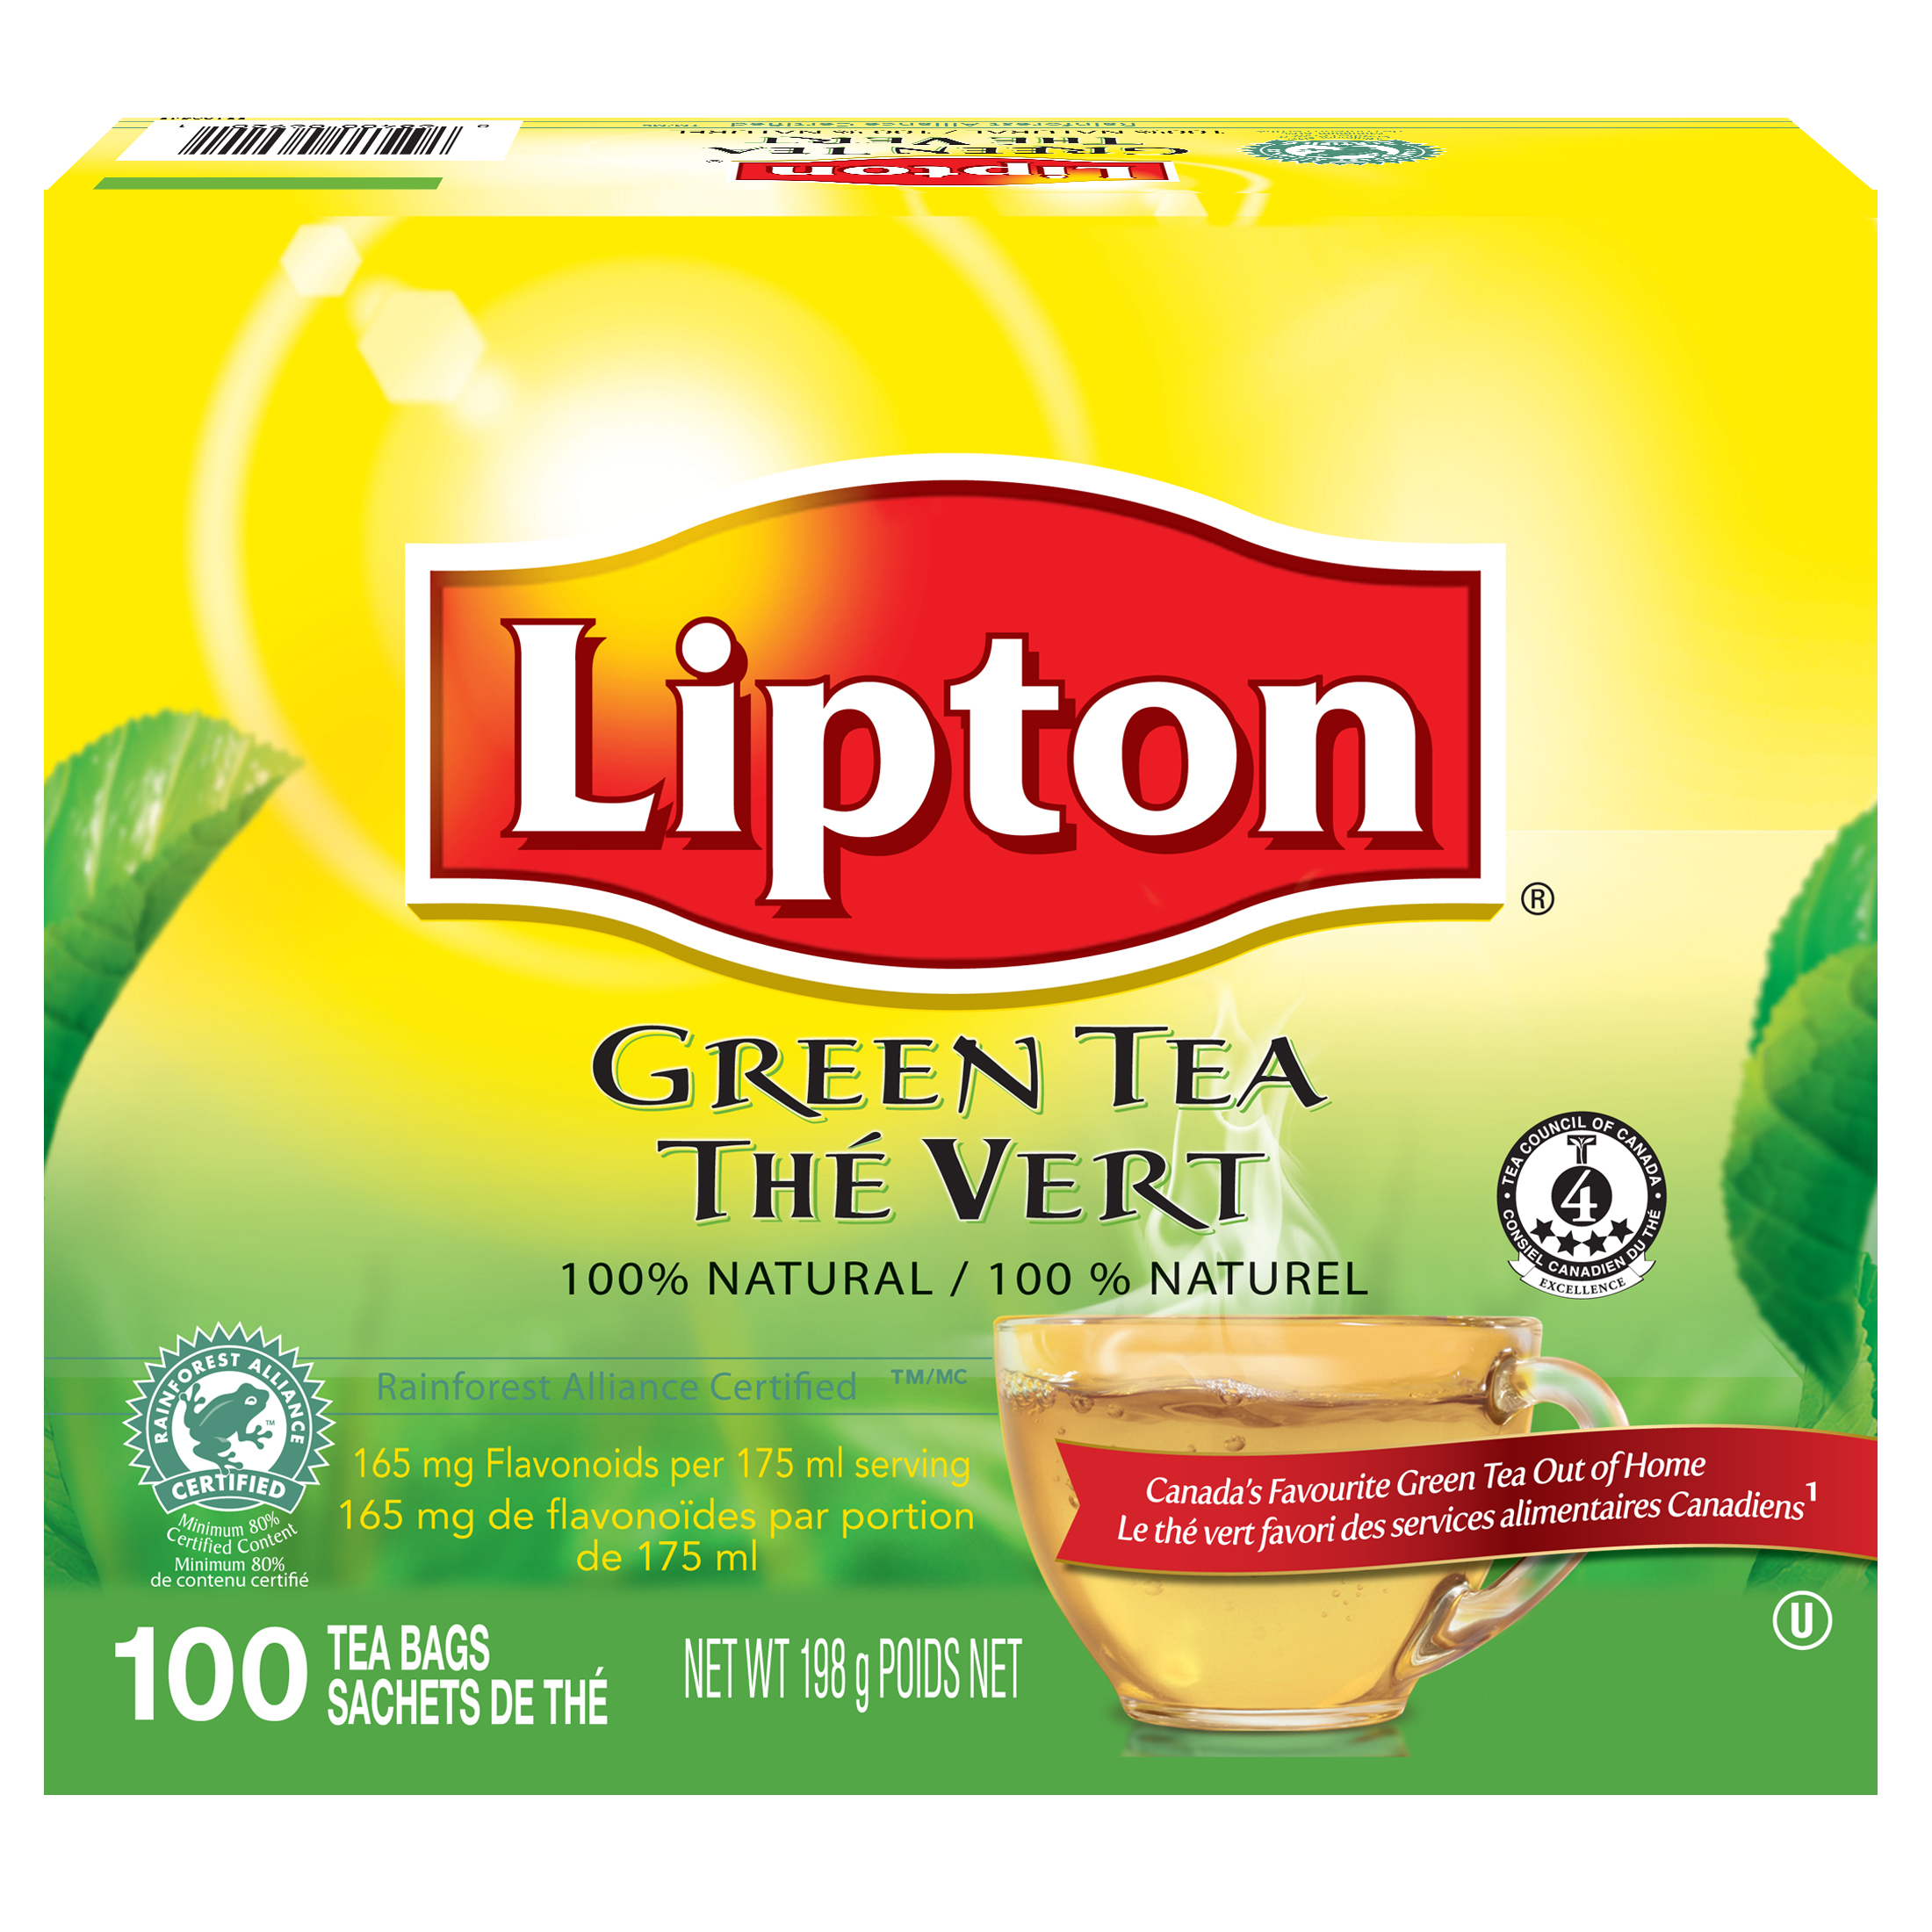 Lipton® Green Tea 5 x 100 bags - Lipton varieties suit every mood.